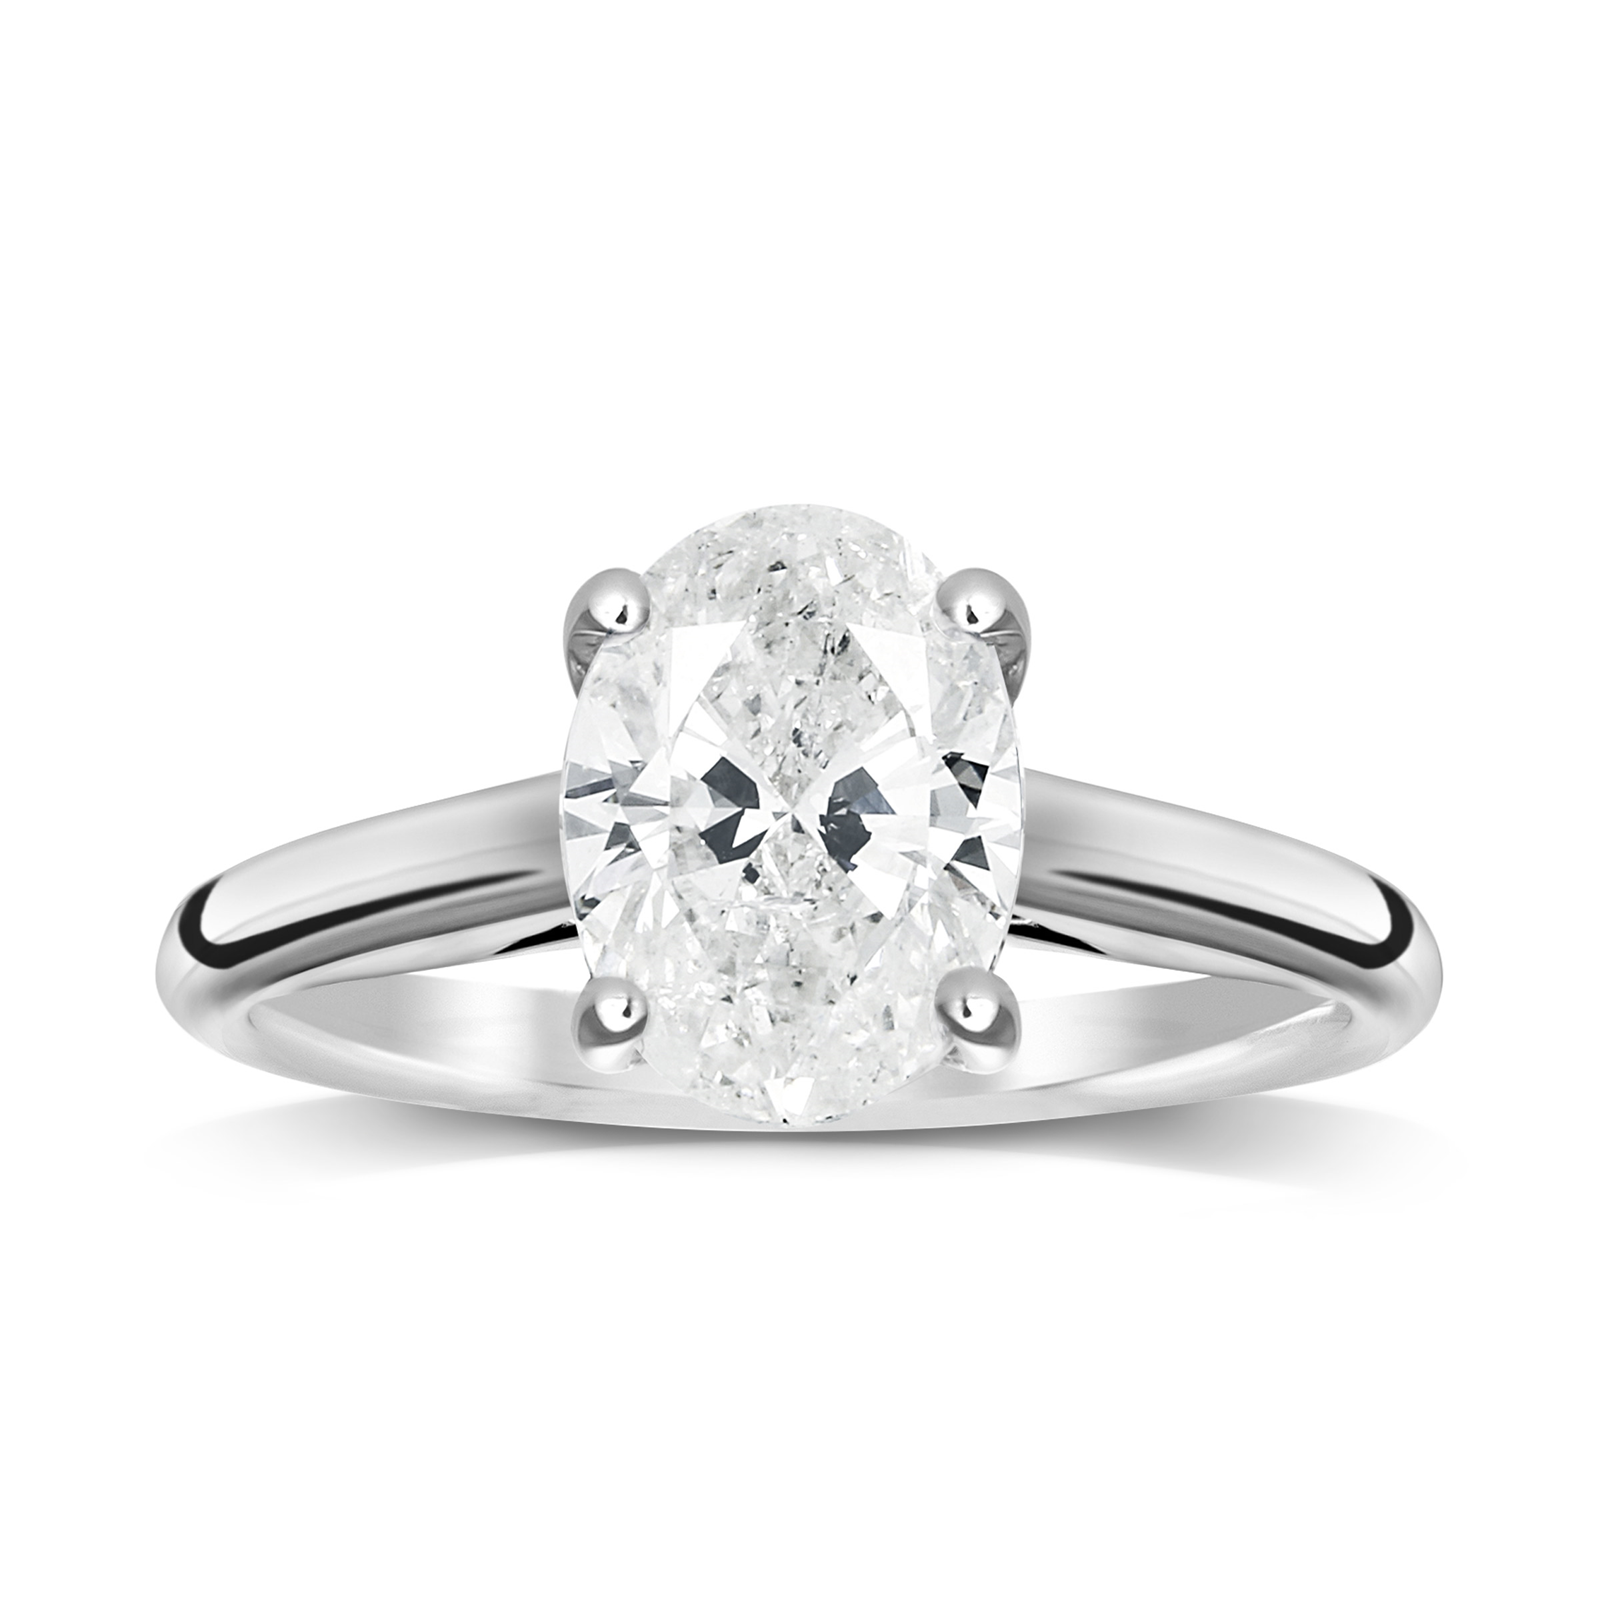 18ct White Gold 1.00ct Oval Cut Solitaire Ring - Ring Size J